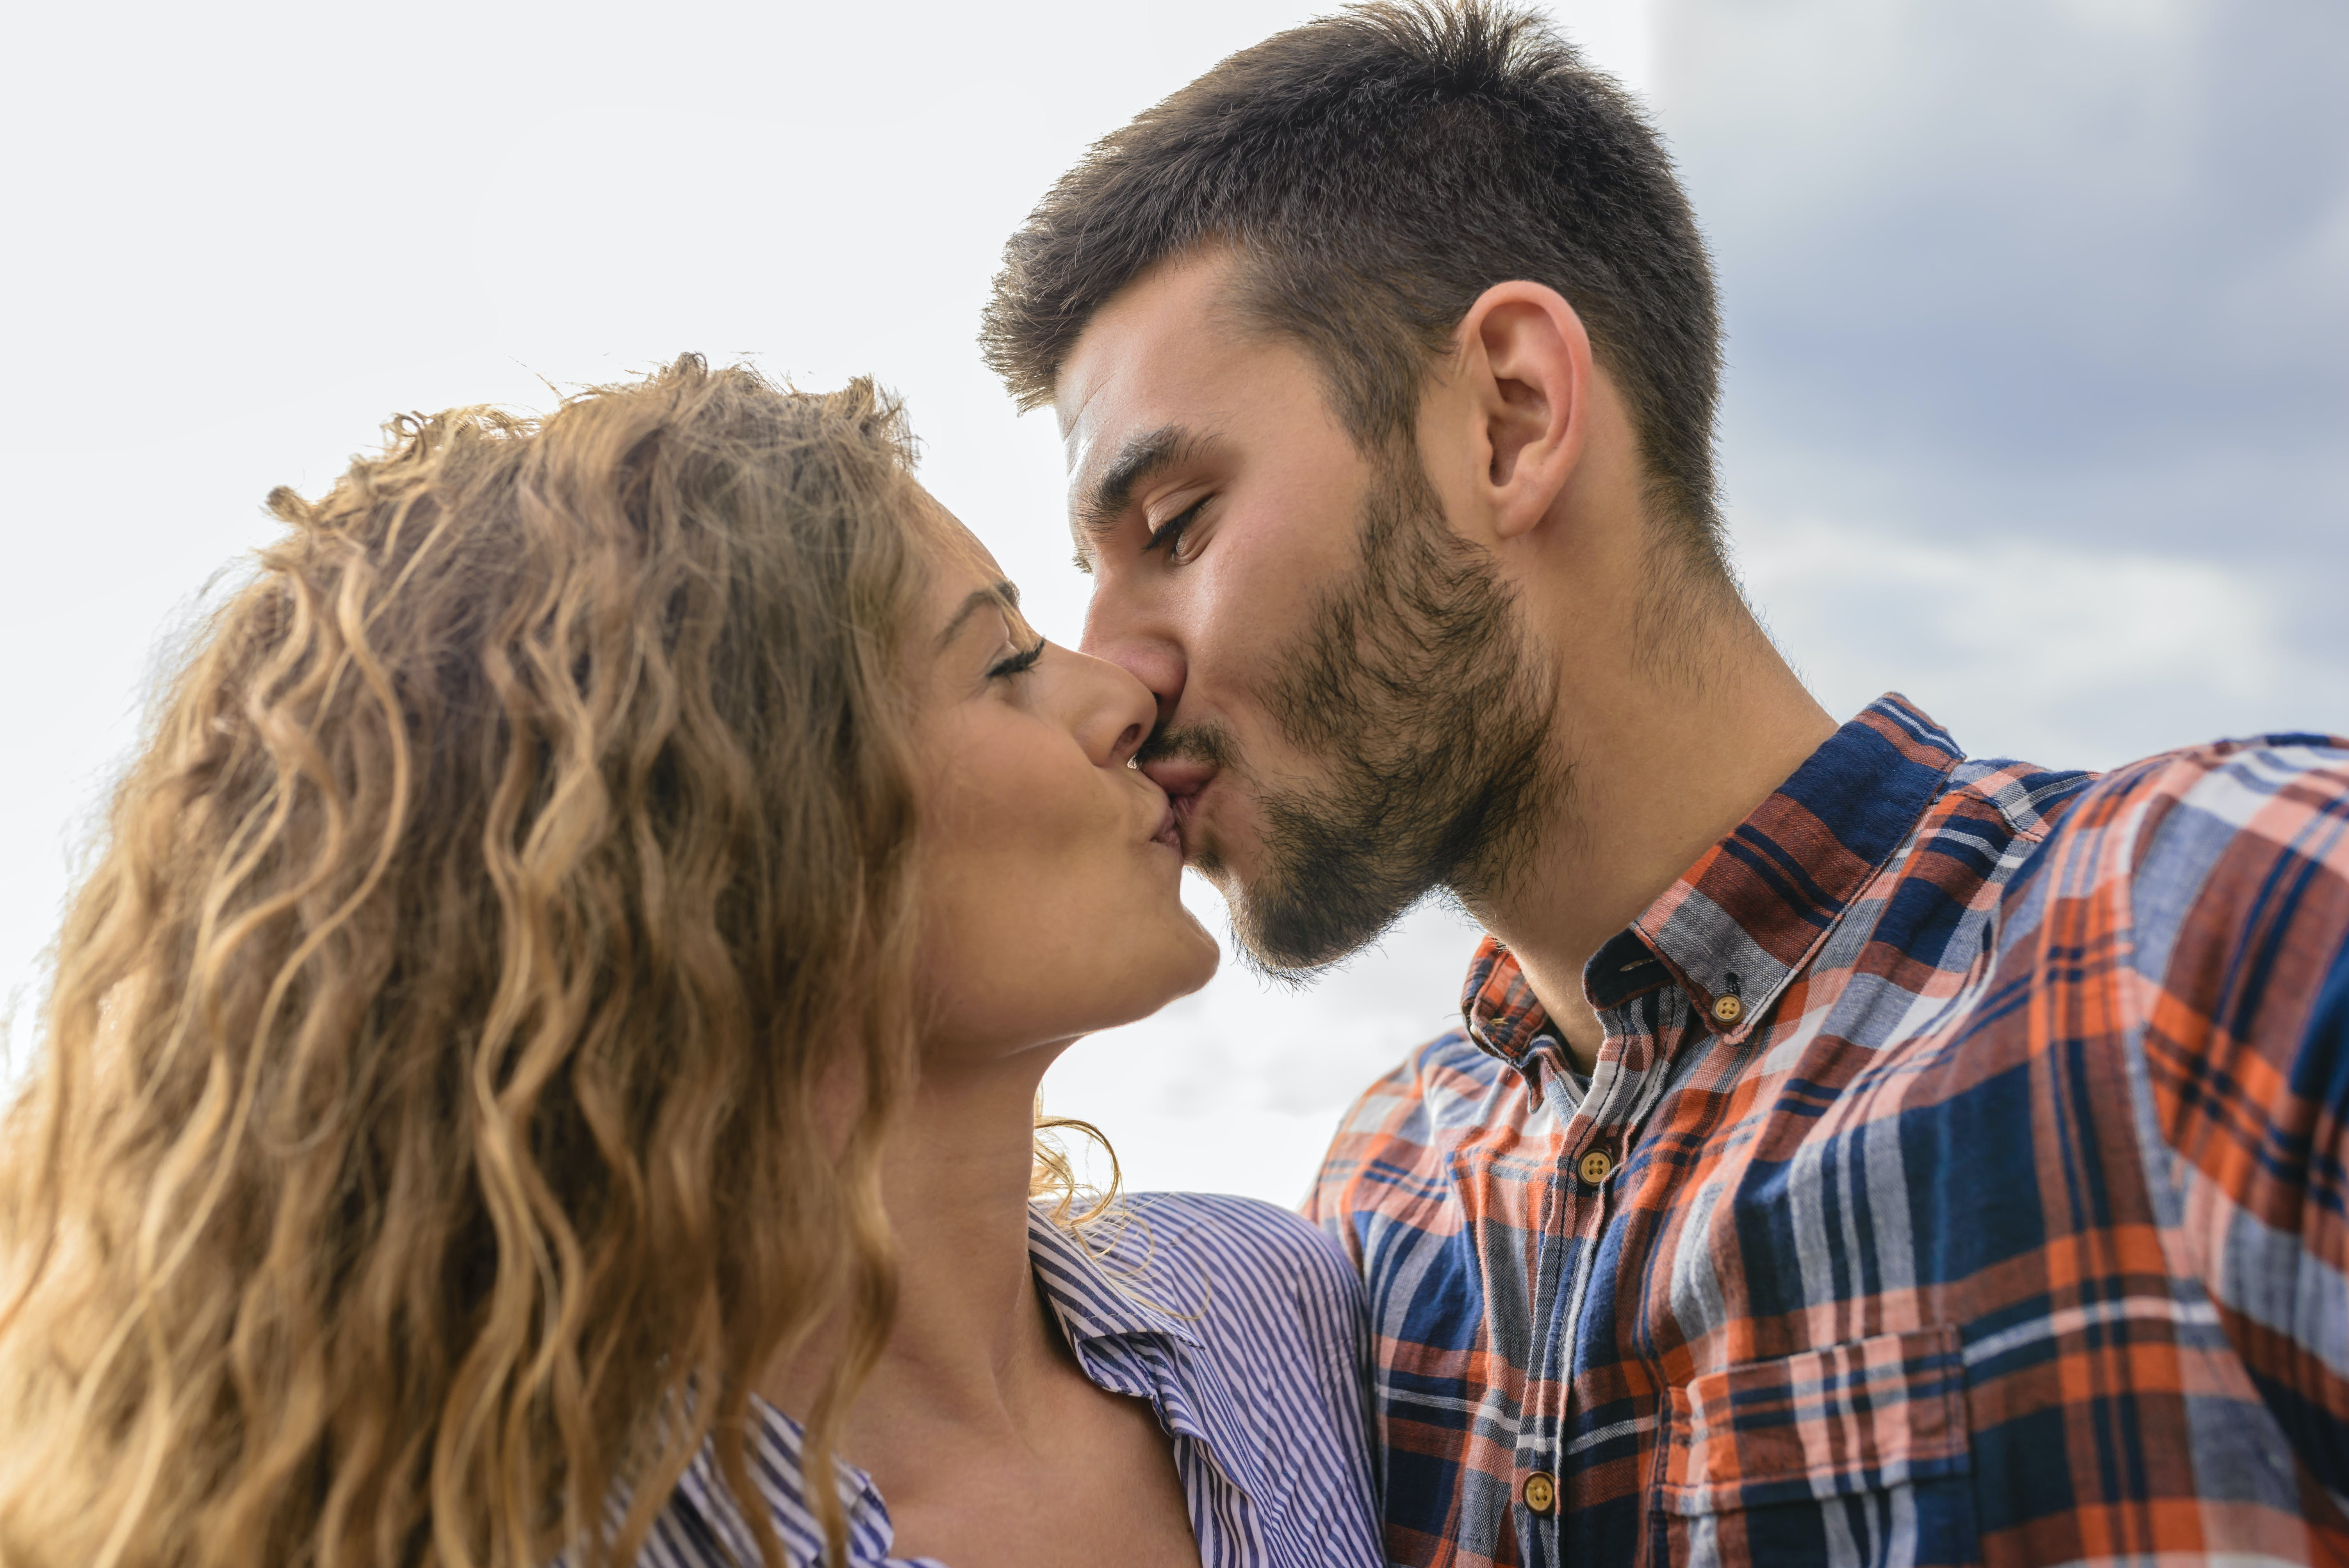 Woman And Man Kissing Each Other